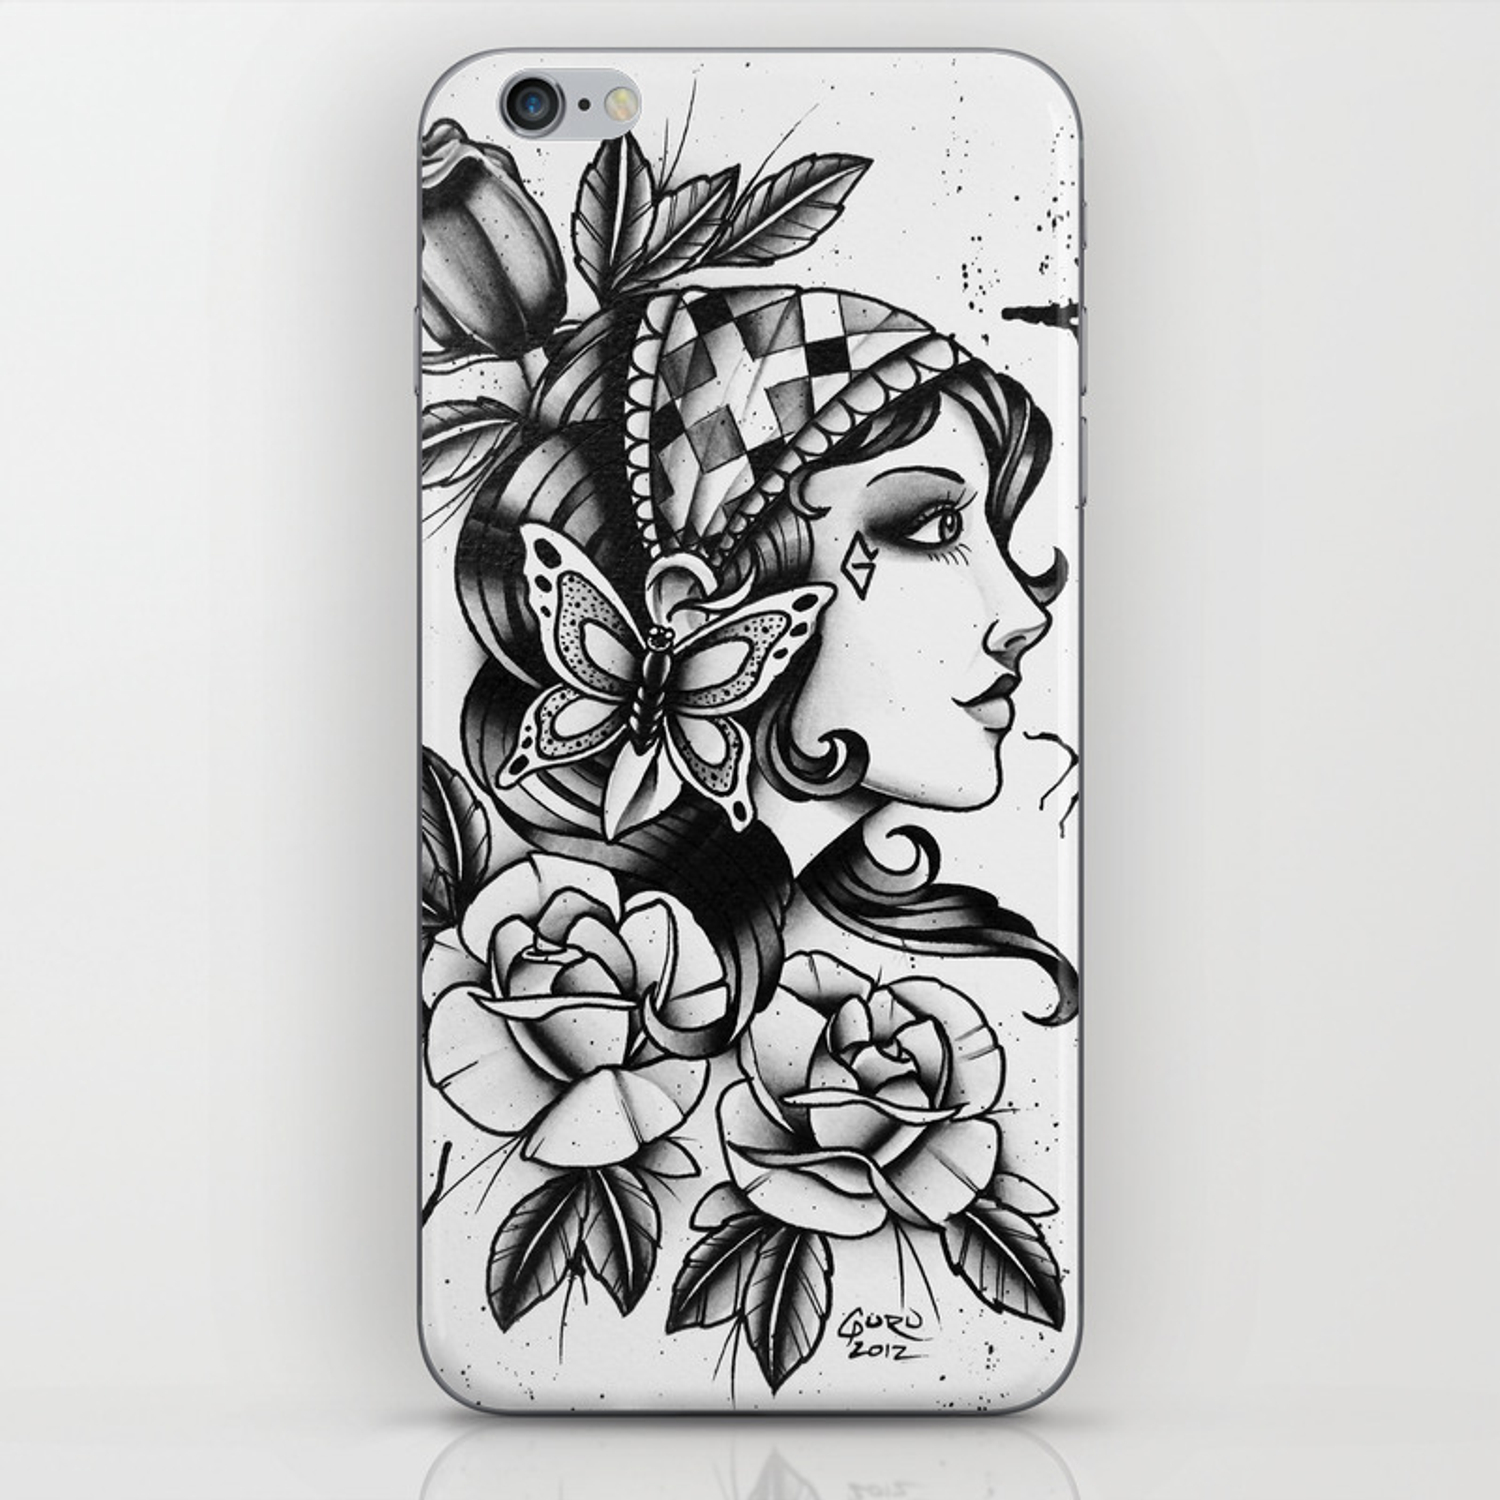 7a4379433721f Gipsy Girl - TATTOO iPhone Skin by gurumarques | Society6